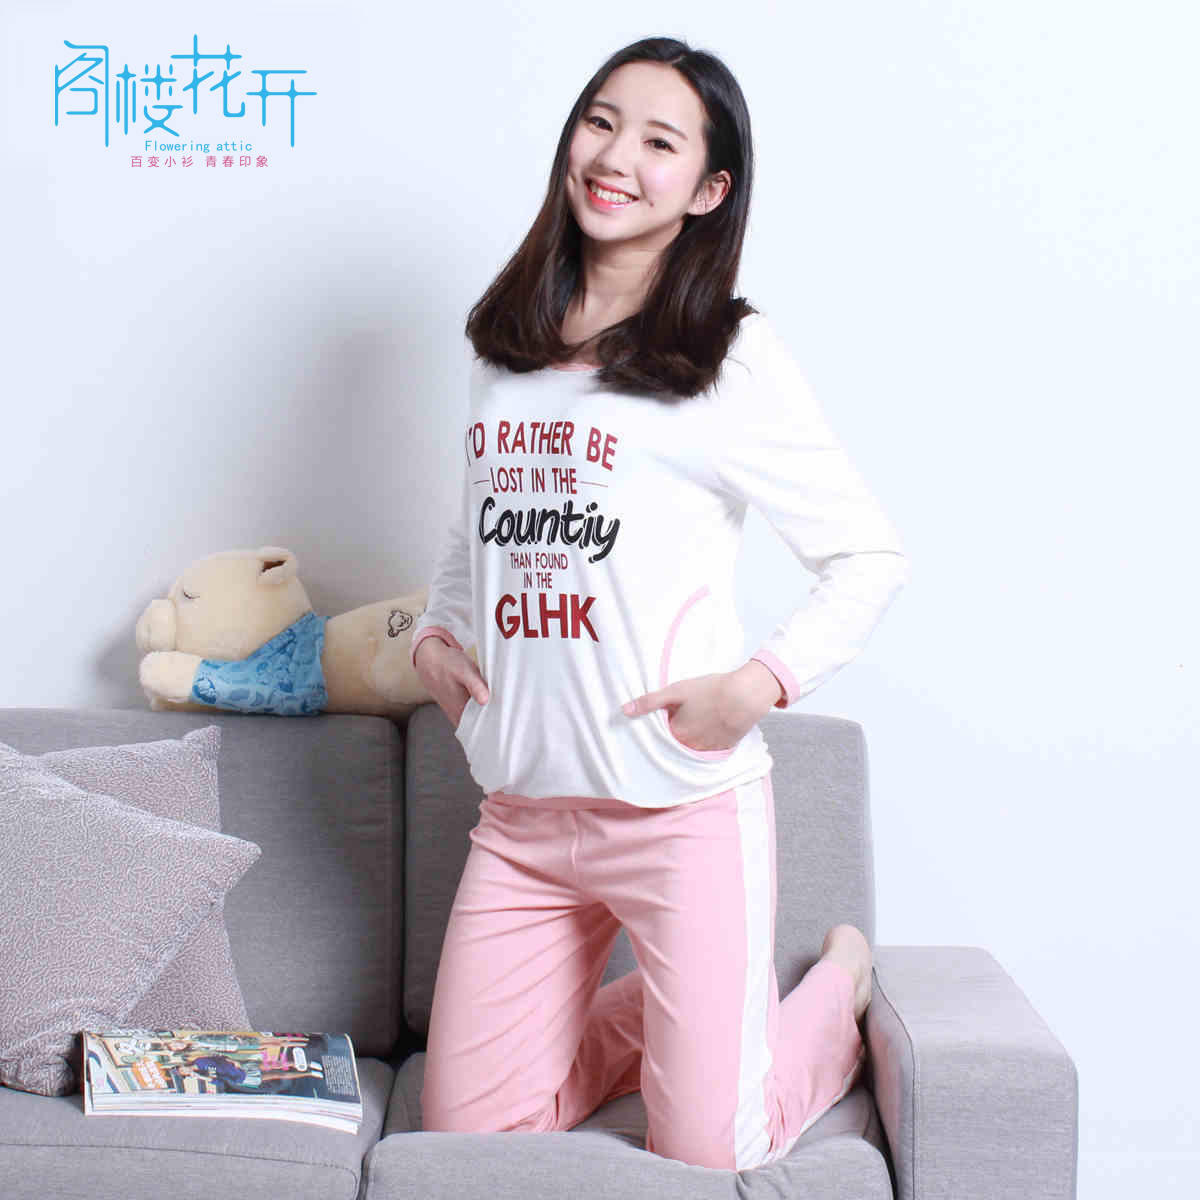 Attic flowers fall new women's suits korean version of the printed t-shirt can waichuan loose pocket movement piece